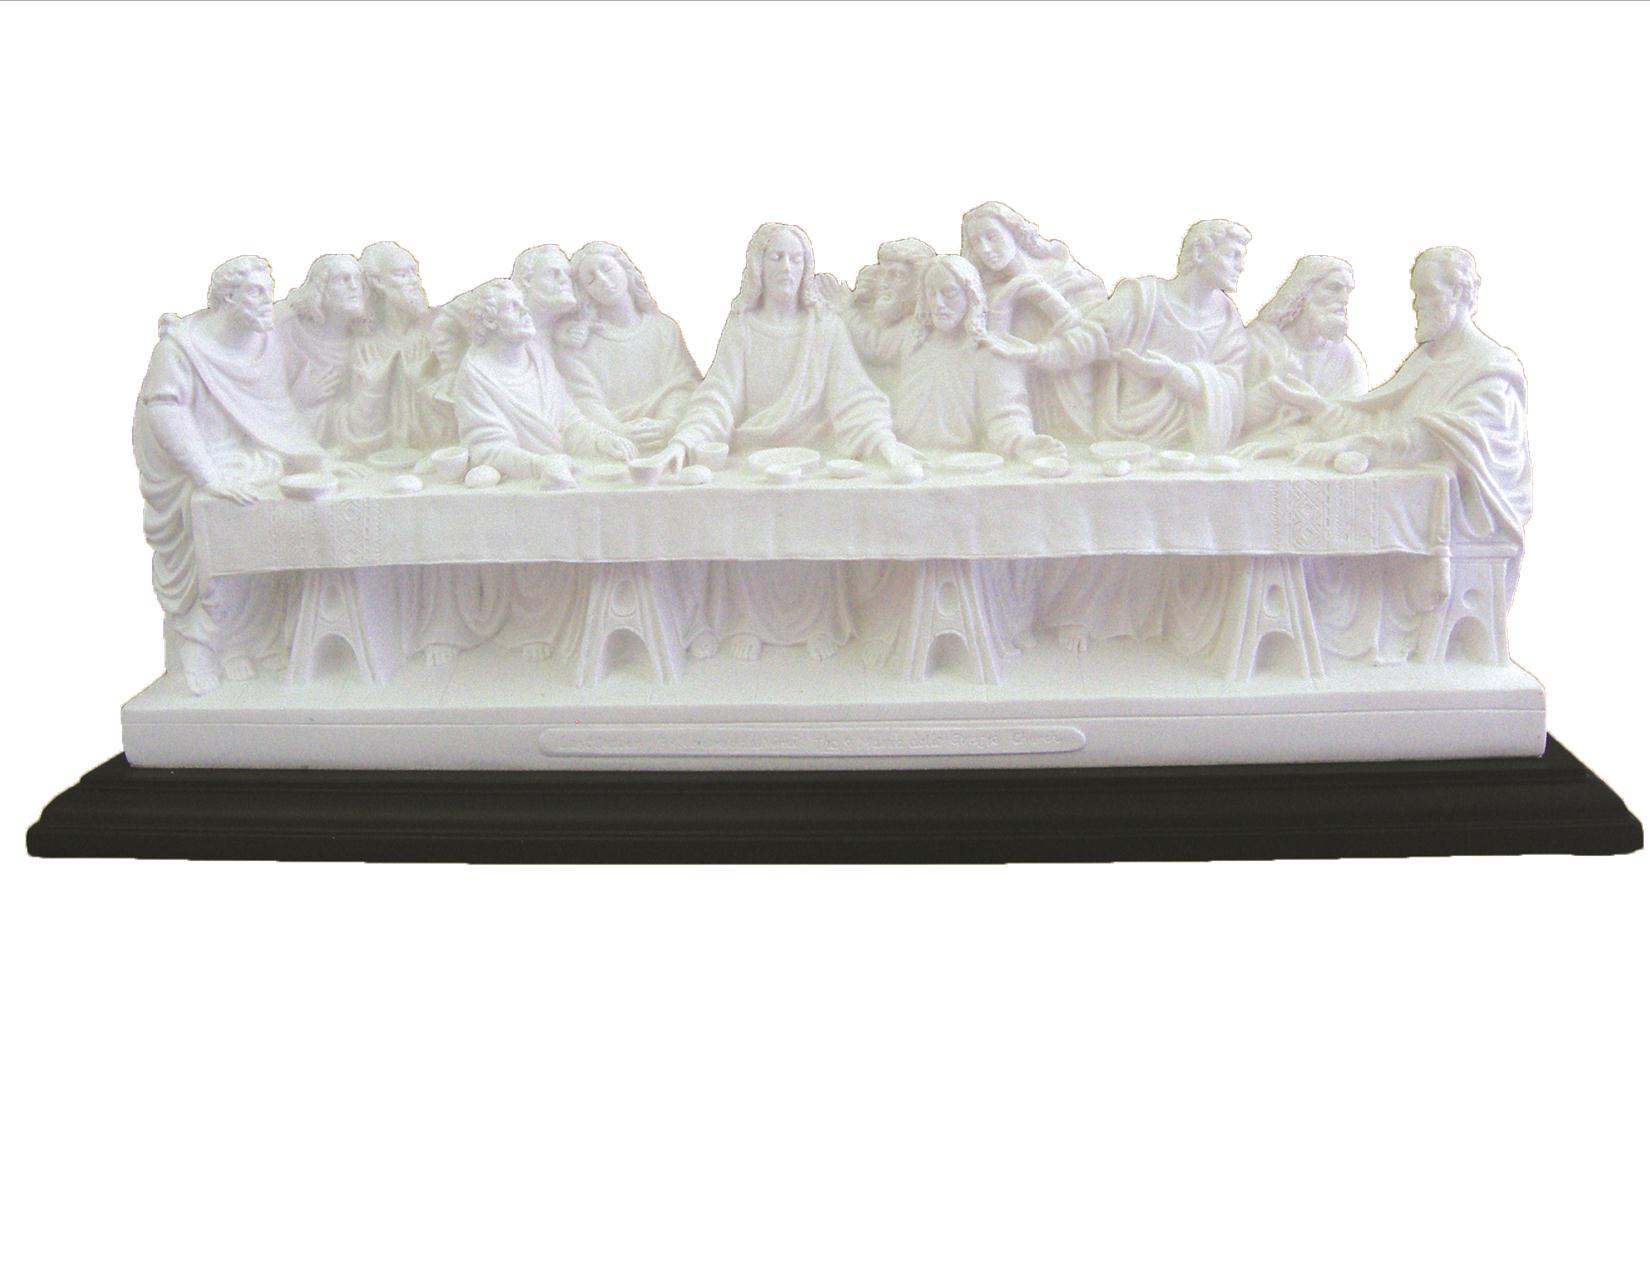 last supper veronese in white resin on a high quality black wood base 9.25